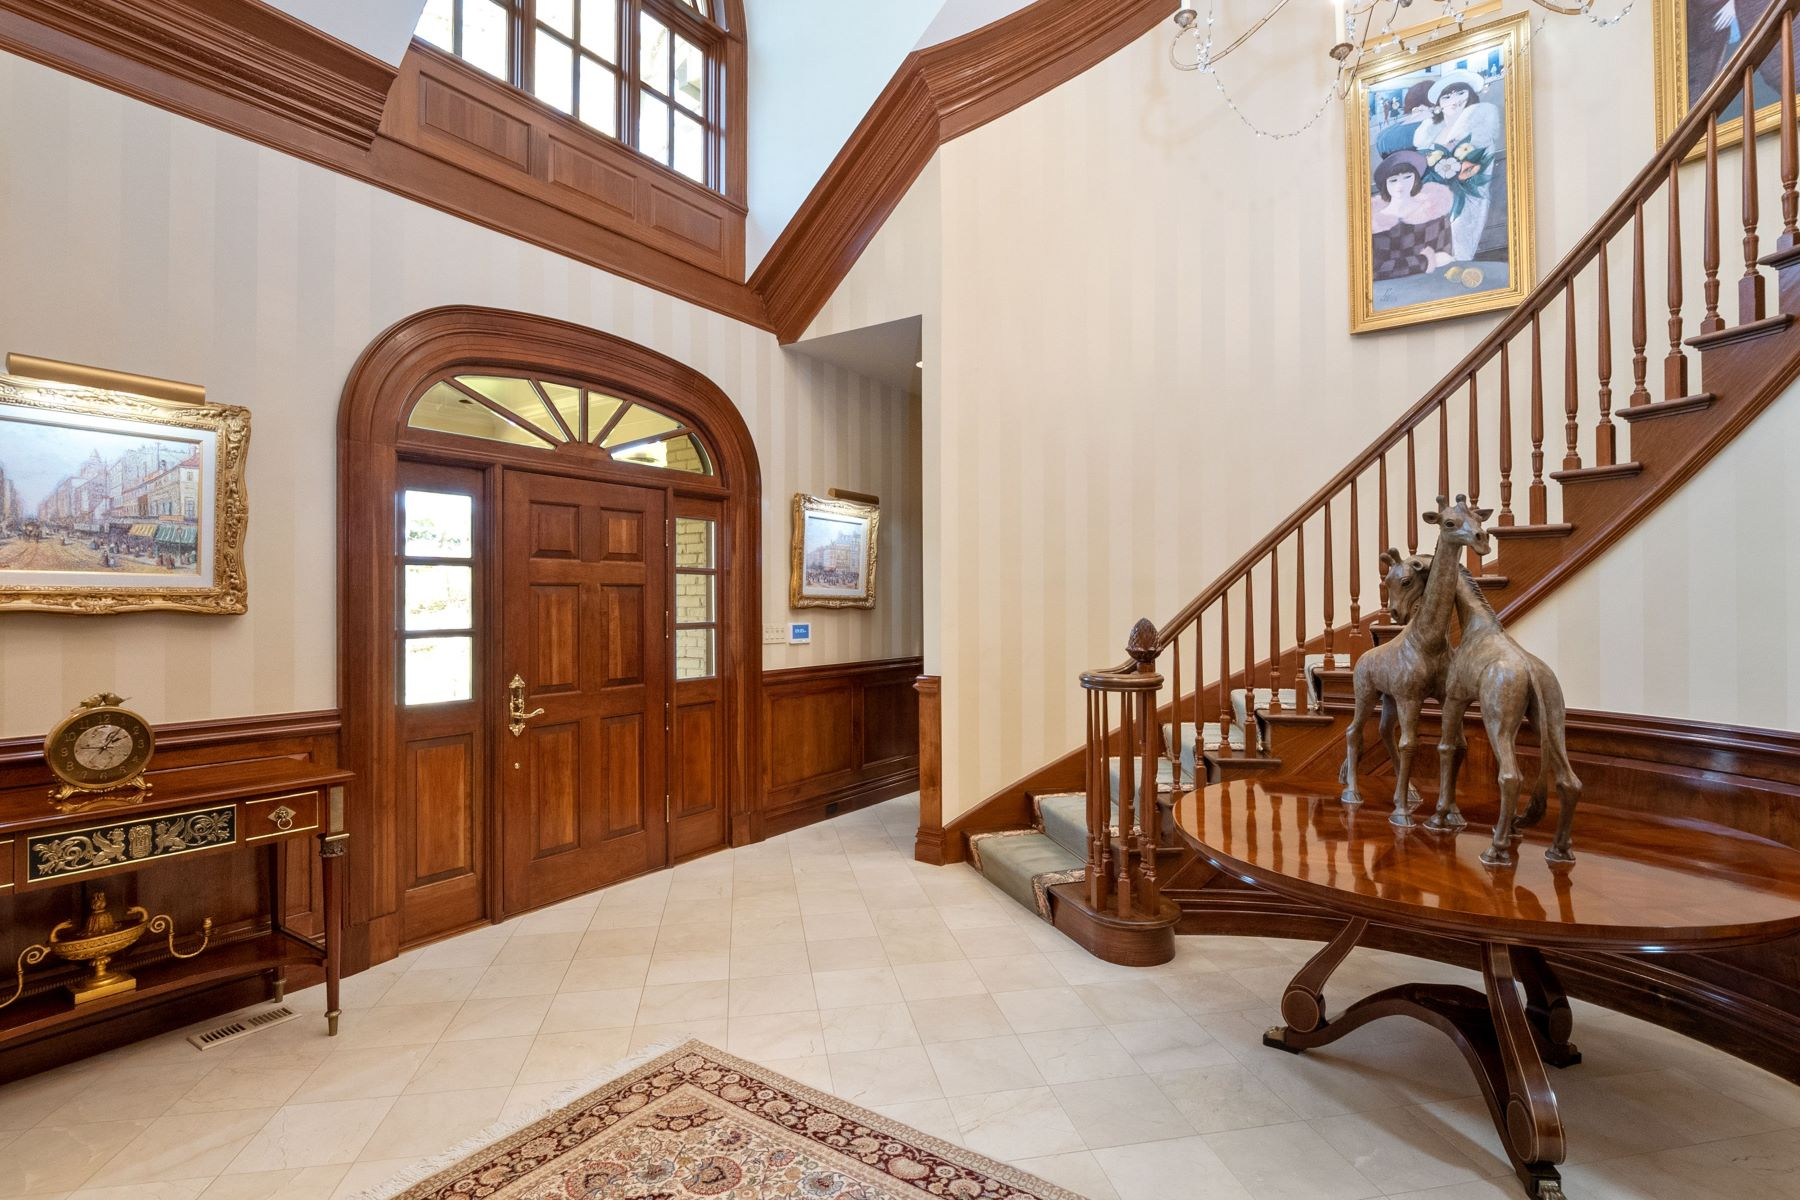 Additional photo for property listing at Secluded Ladue Home 8 Chateau Oaks St. Louis, Missouri 63124 United States